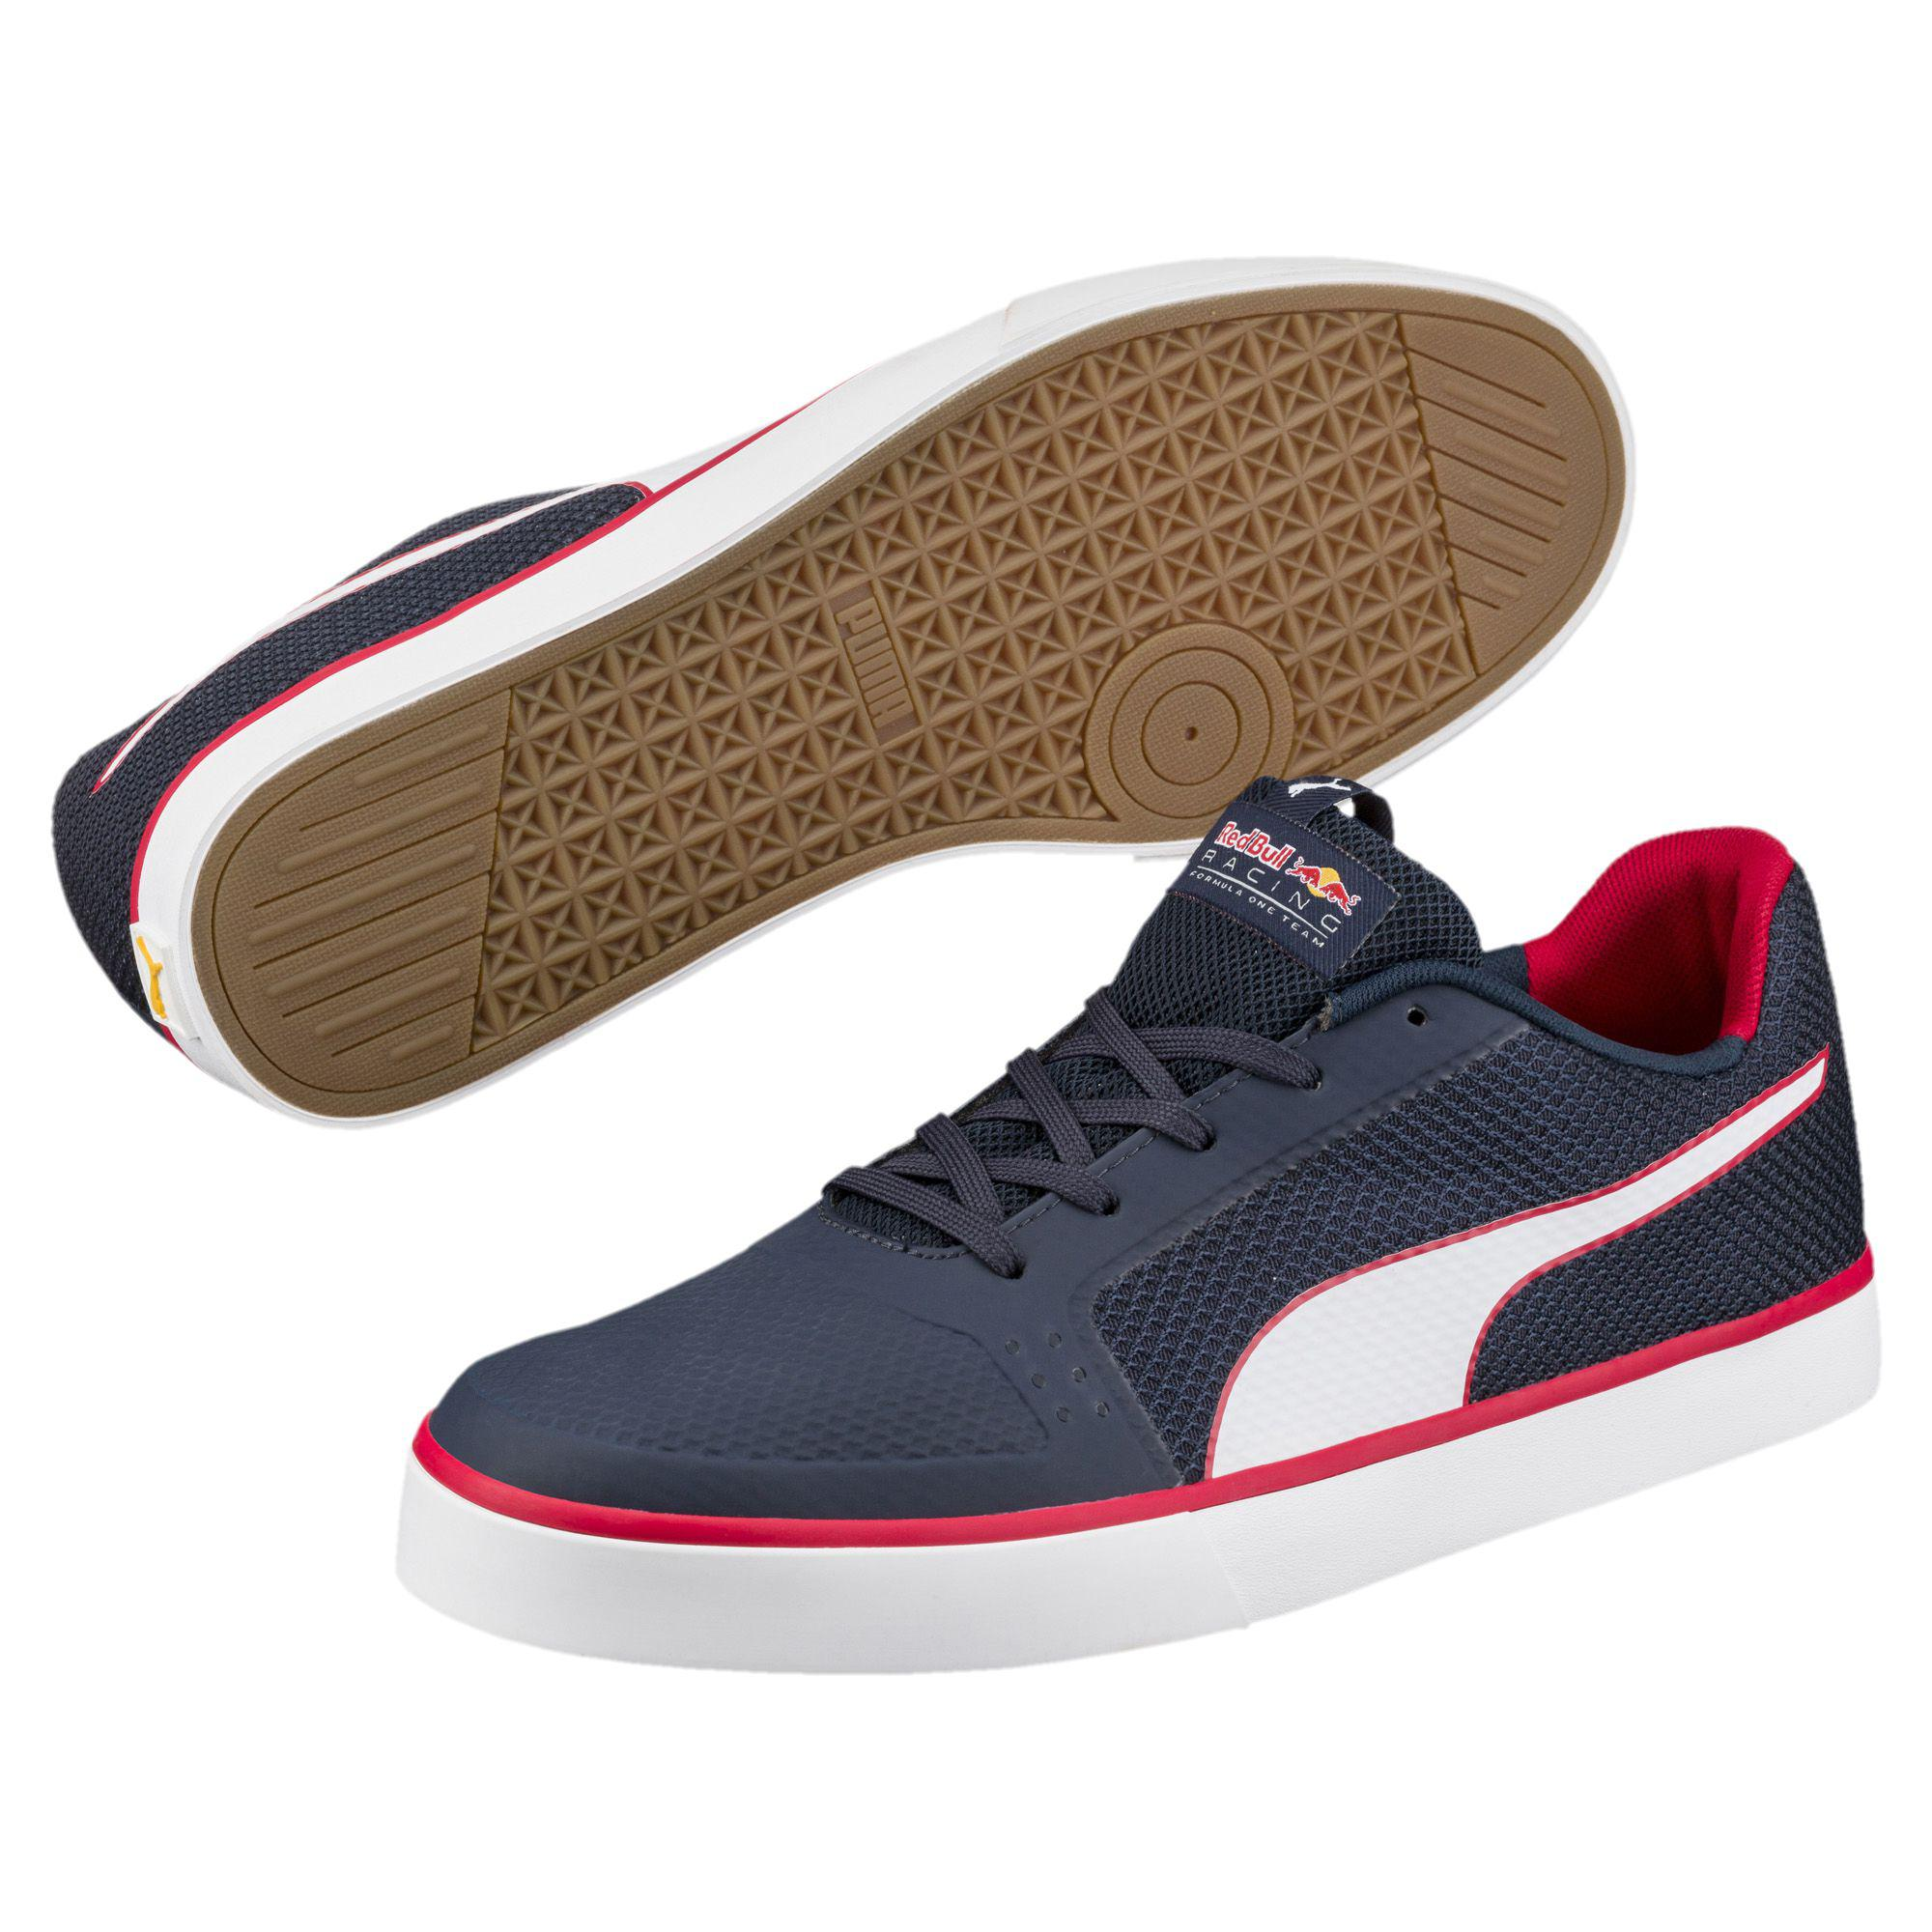 Men Puma Men's for Wings Racing Red Blue Lyst Vulc Shoes in